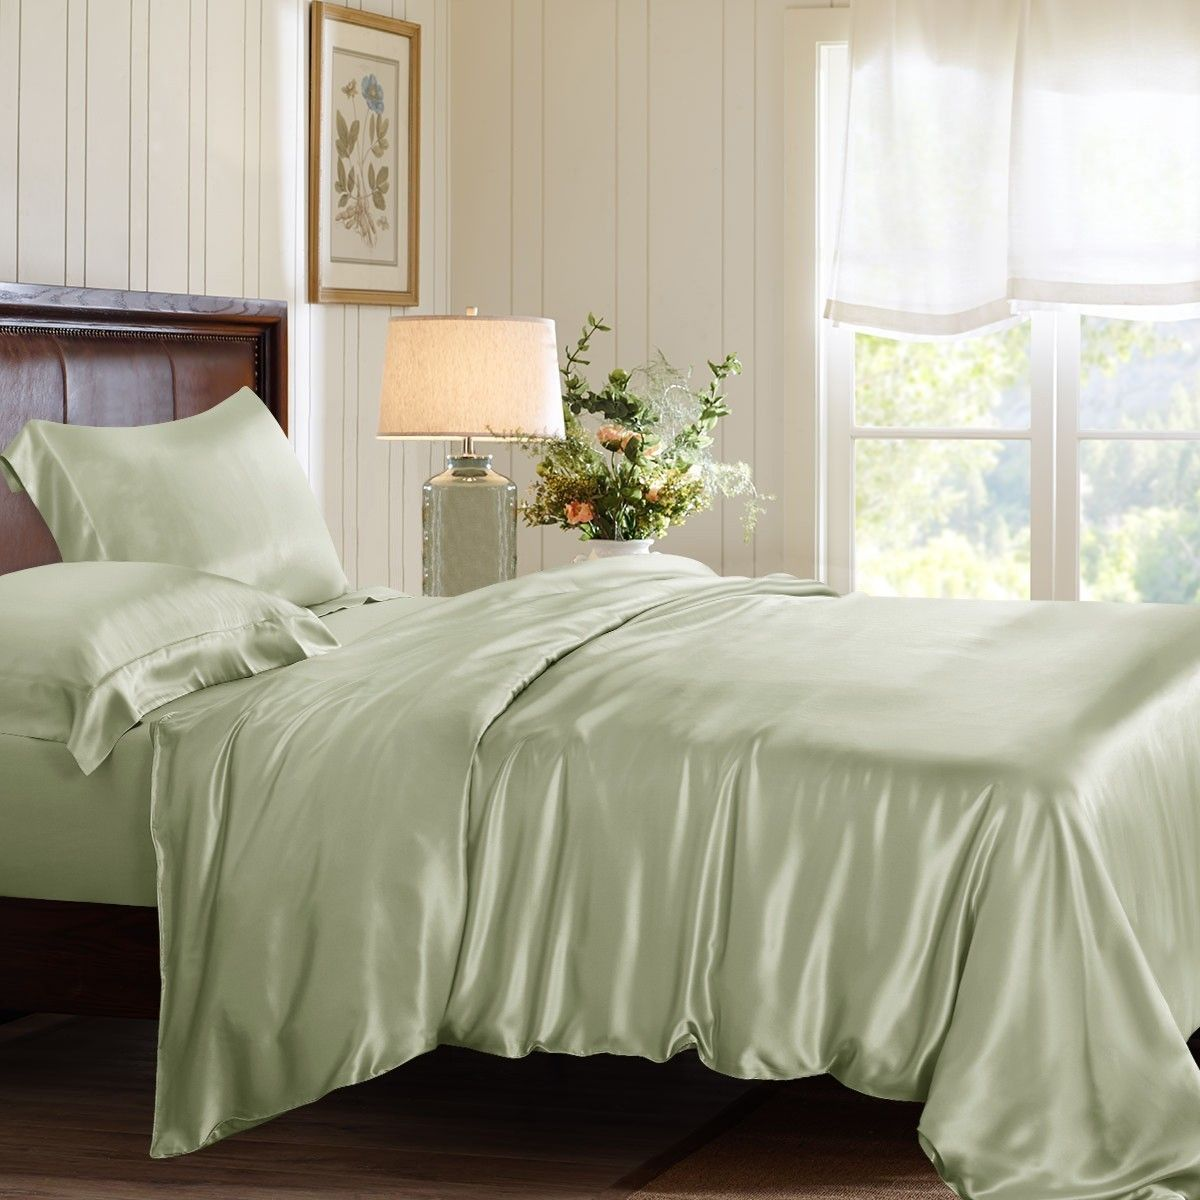 Sage Green Silk Duvet Cover With Images Silk Duvet Cover Silk